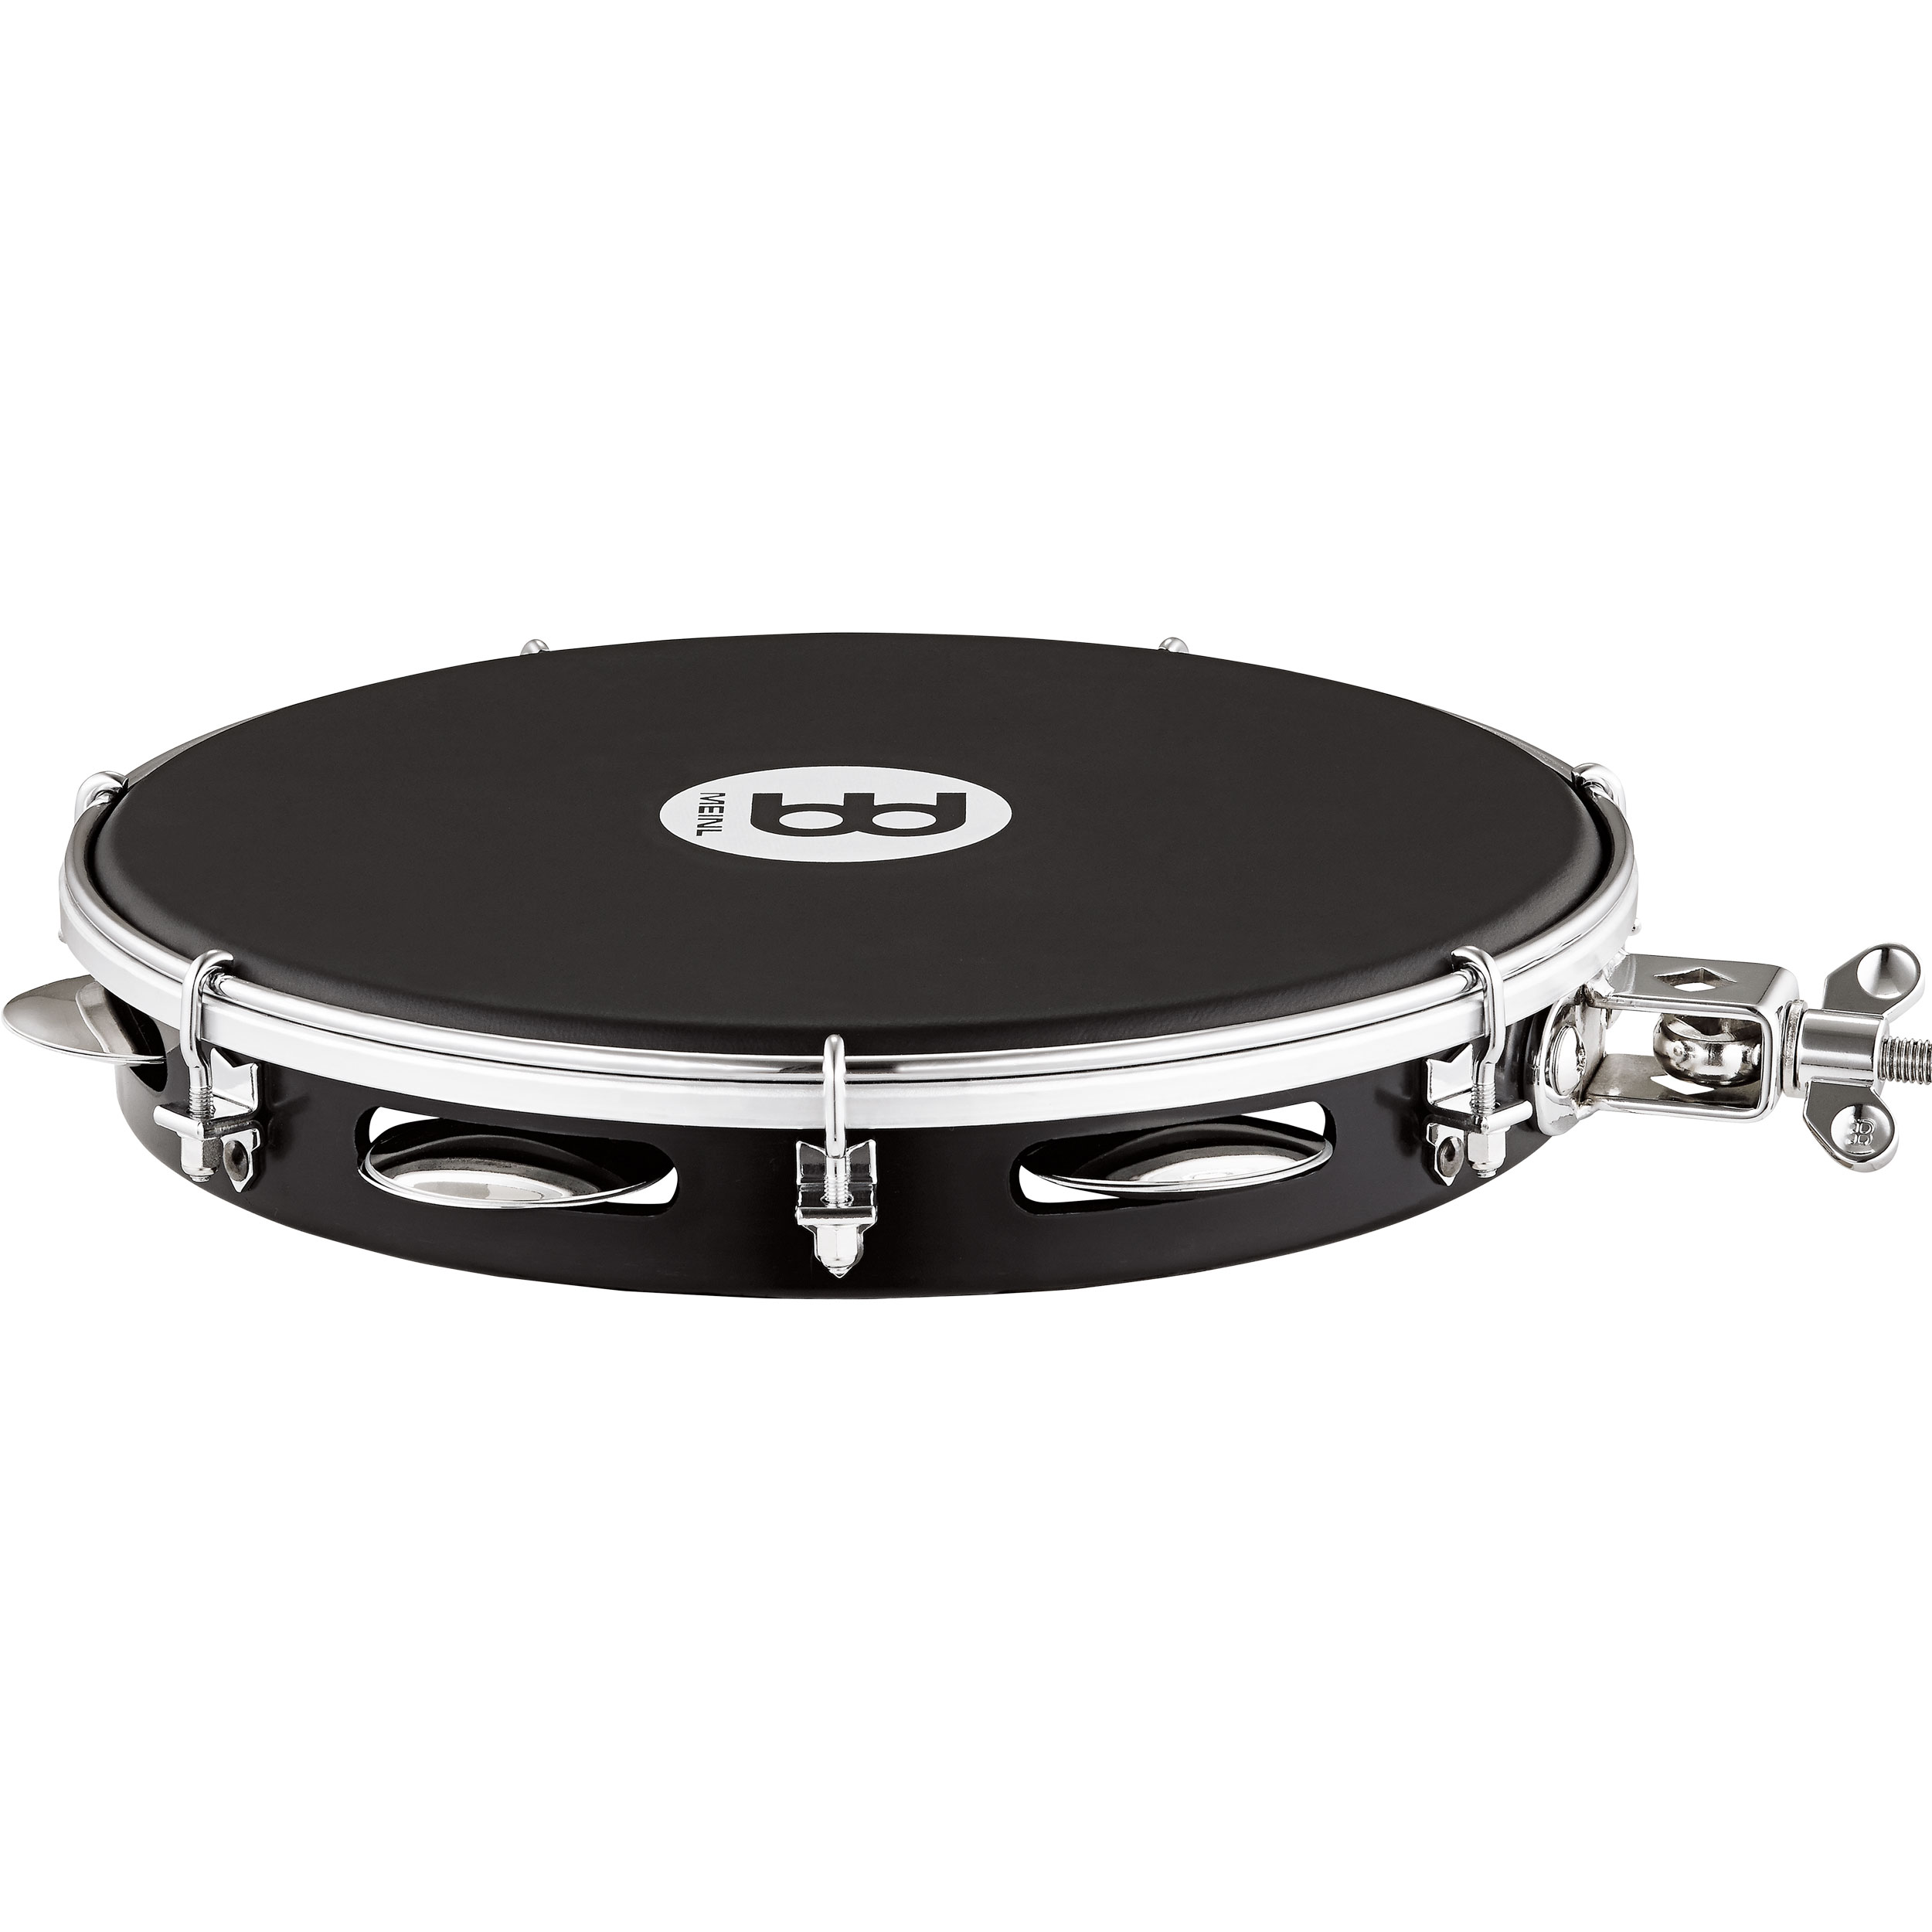 "Meinl 10"" Traditional ABS Pandeiro with Holder"